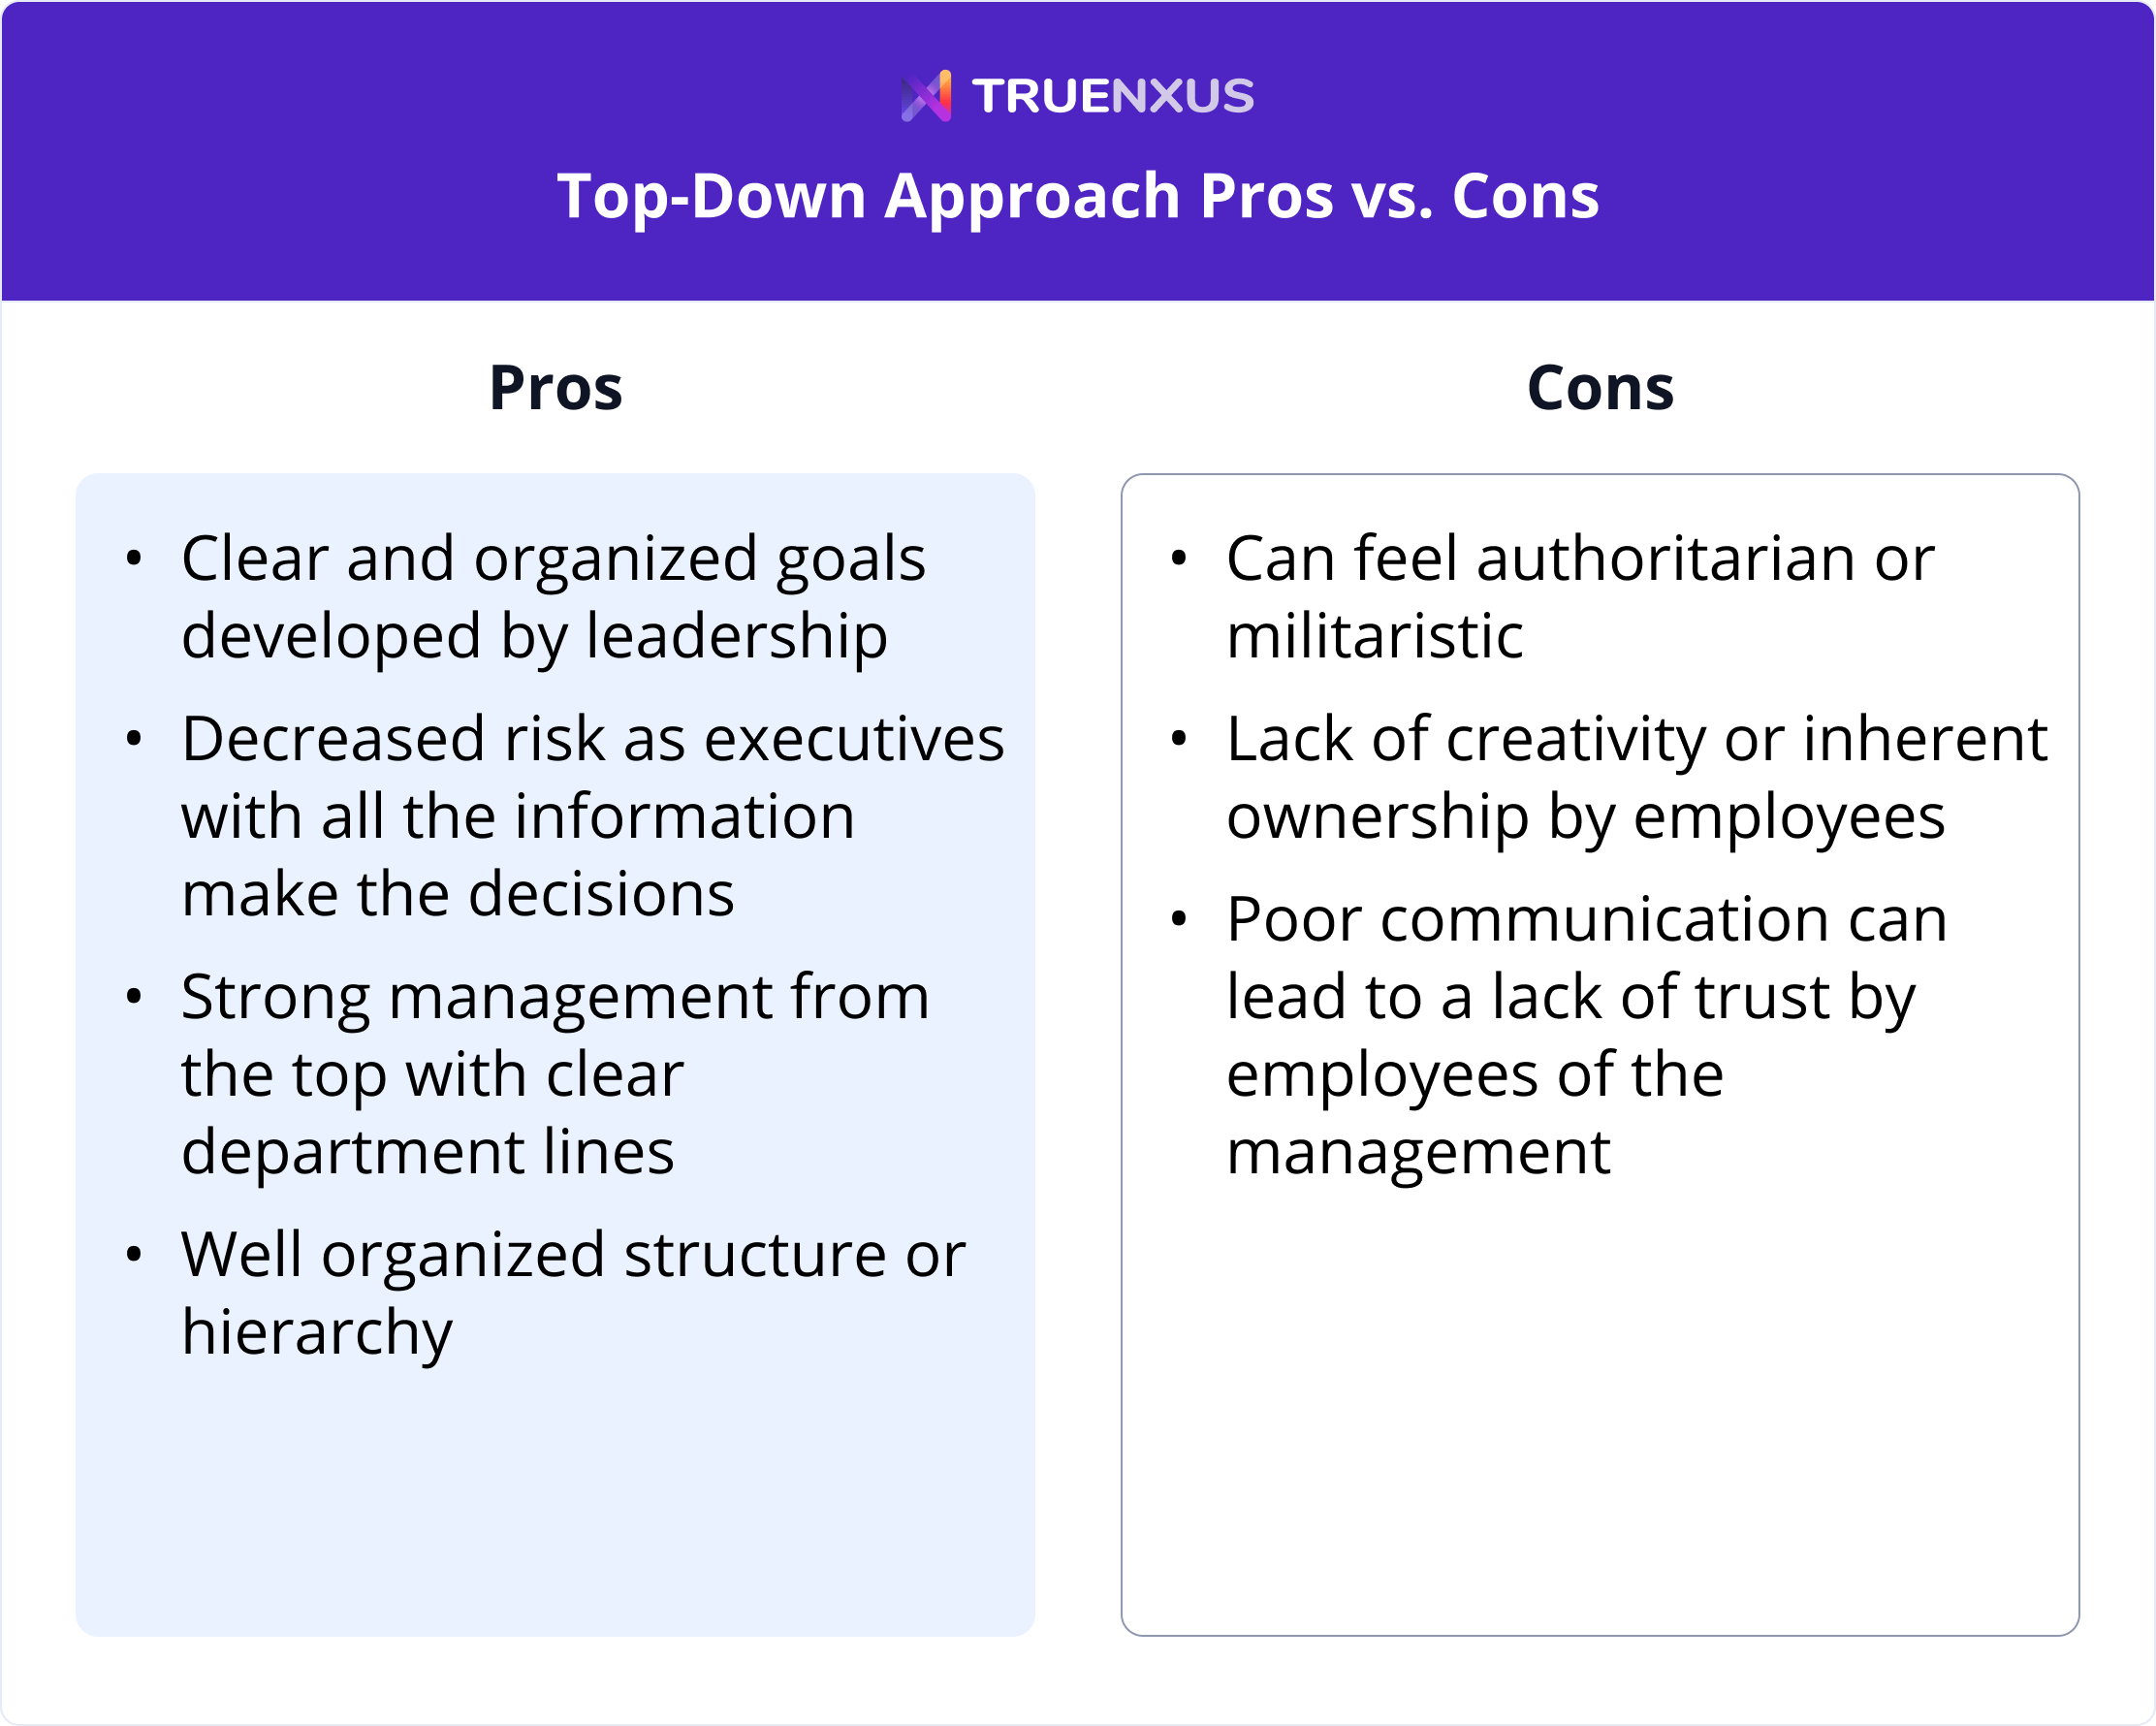 Top-down approach pros vs. cons